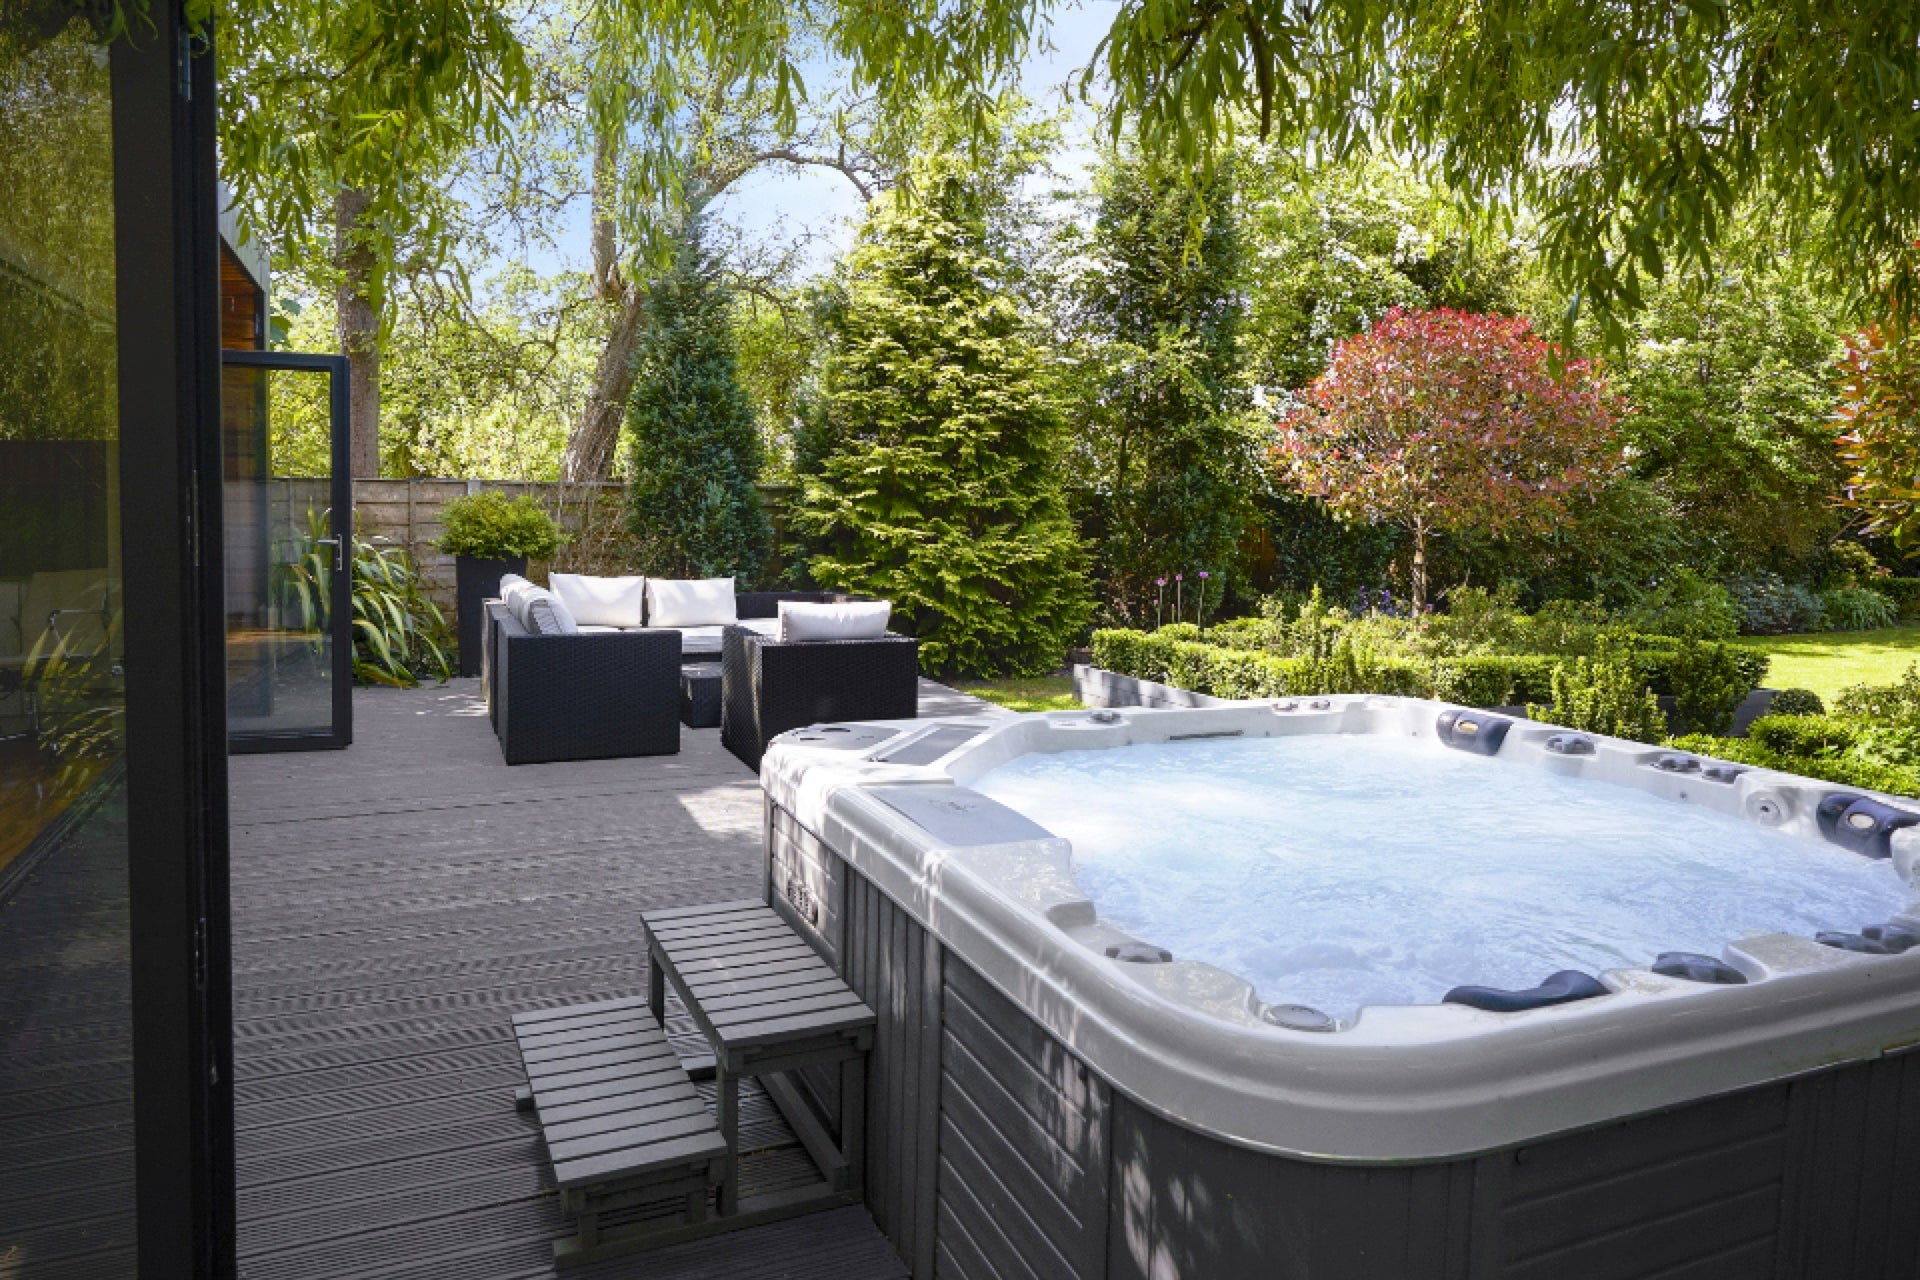 Hot tub and terrace in garden